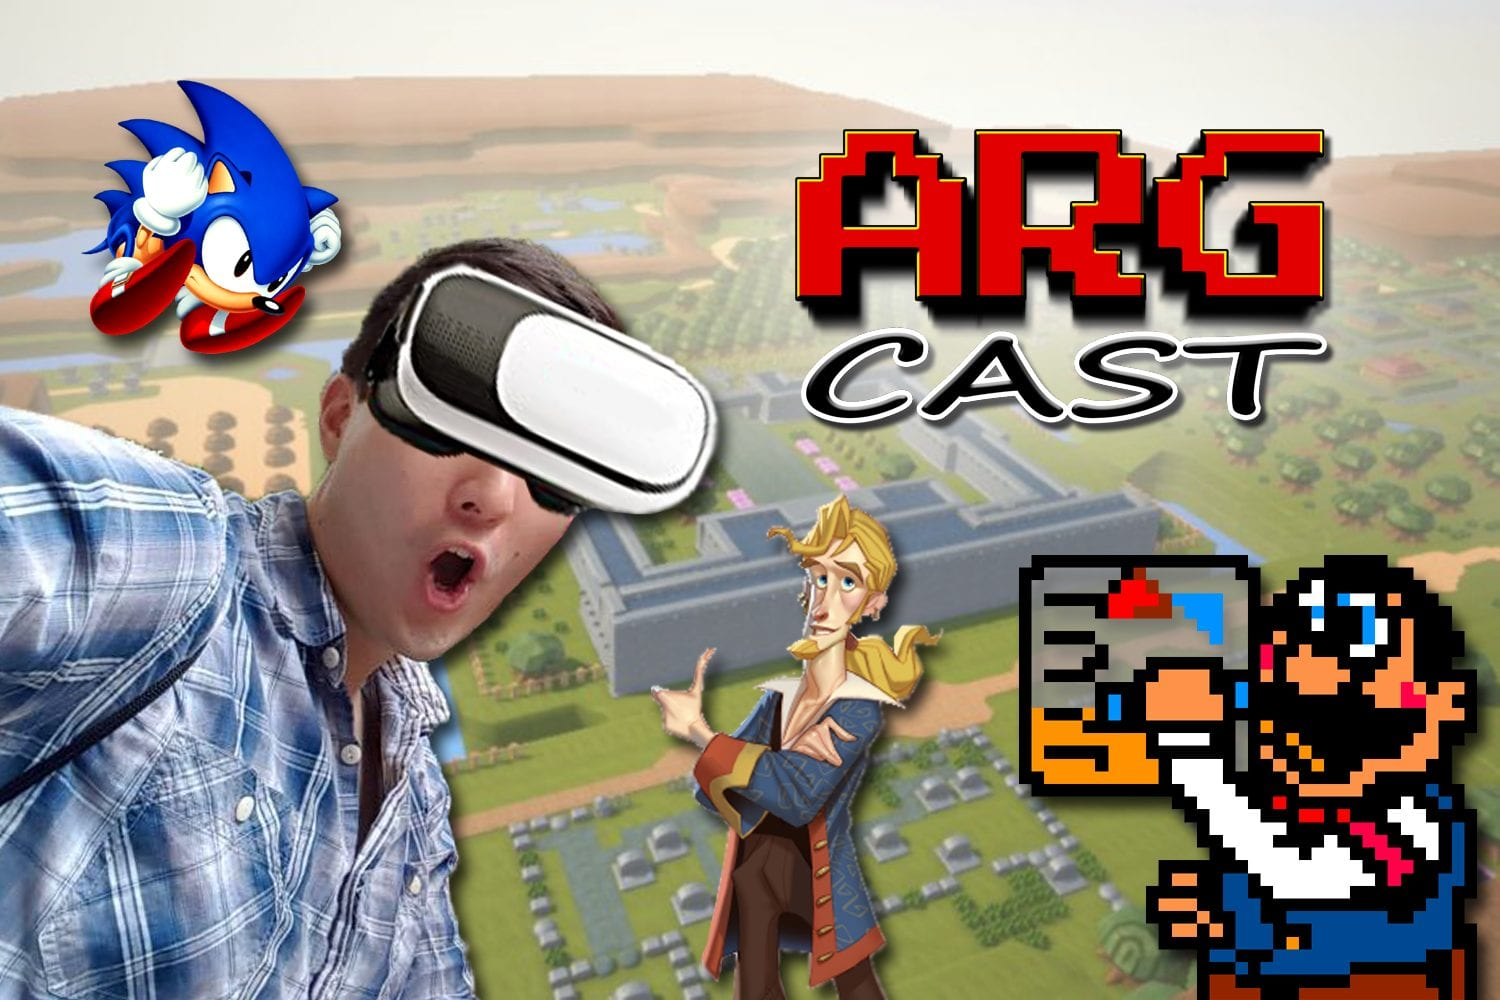 ARGcast #60: Virtual Reality Retro Gaming with Justin Chou